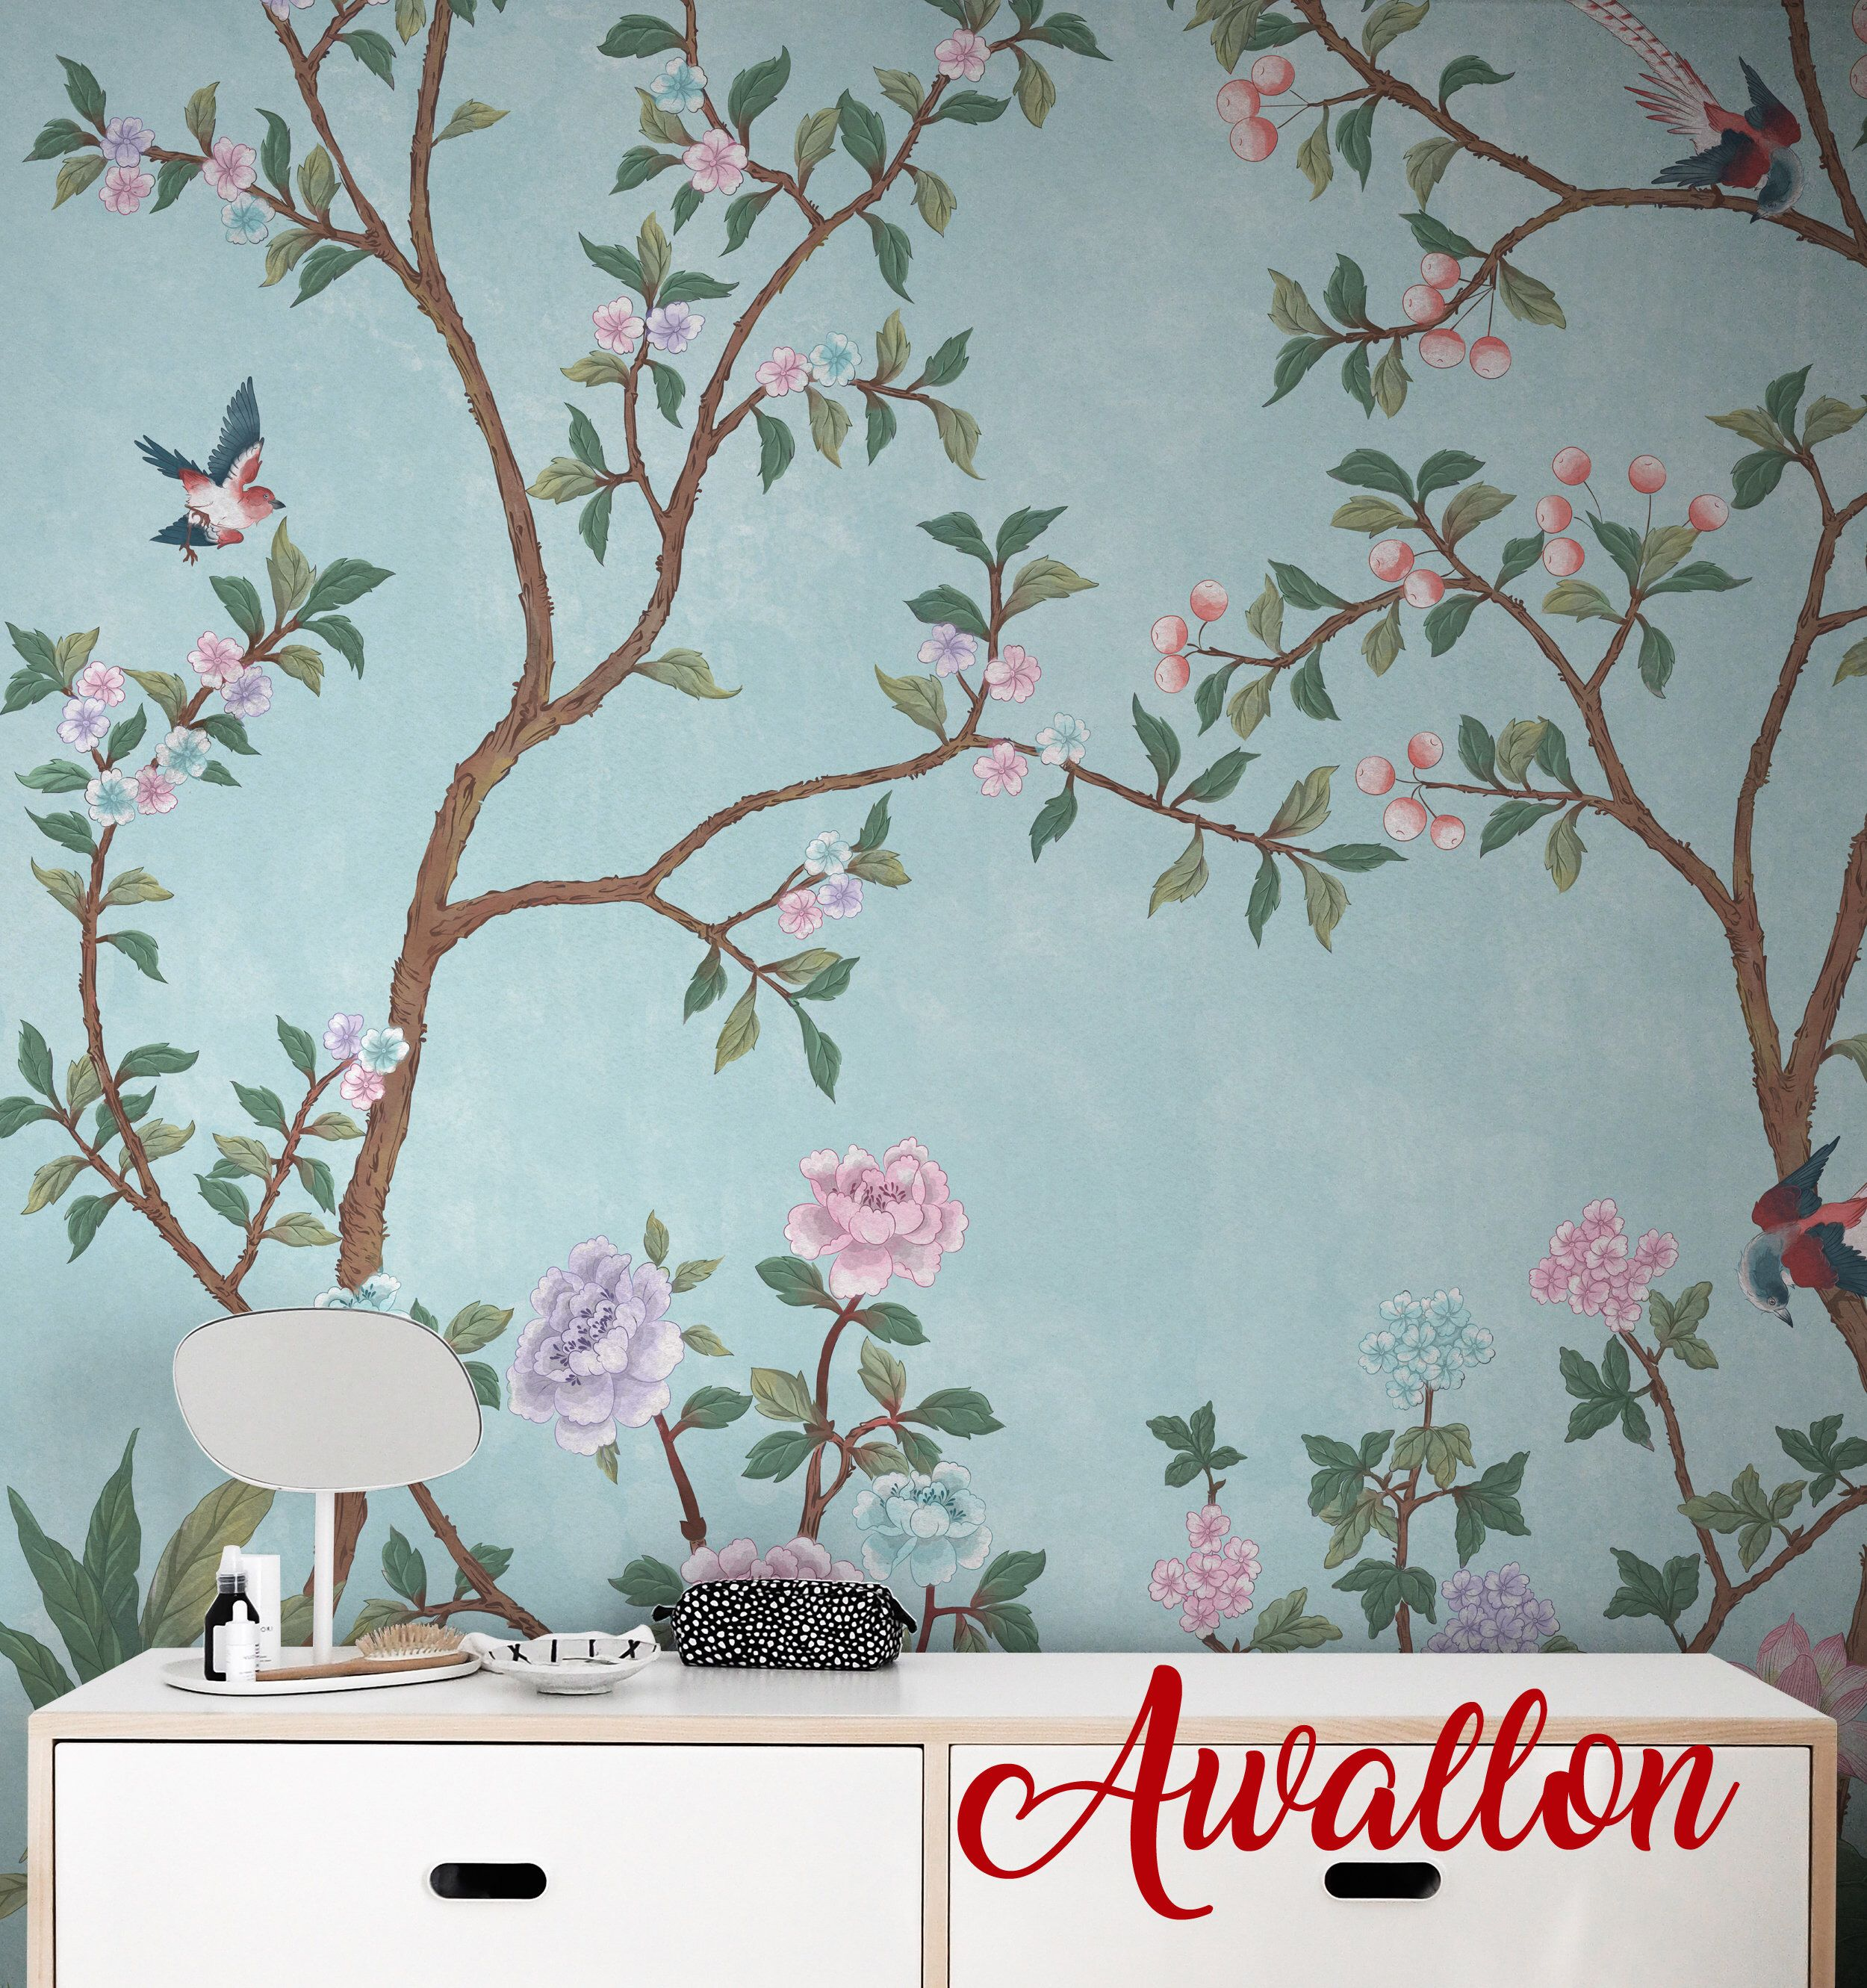 Vintage Chinoiserie Wallpaper Birds Wallpaper Easy Install And Removable Wallpaper